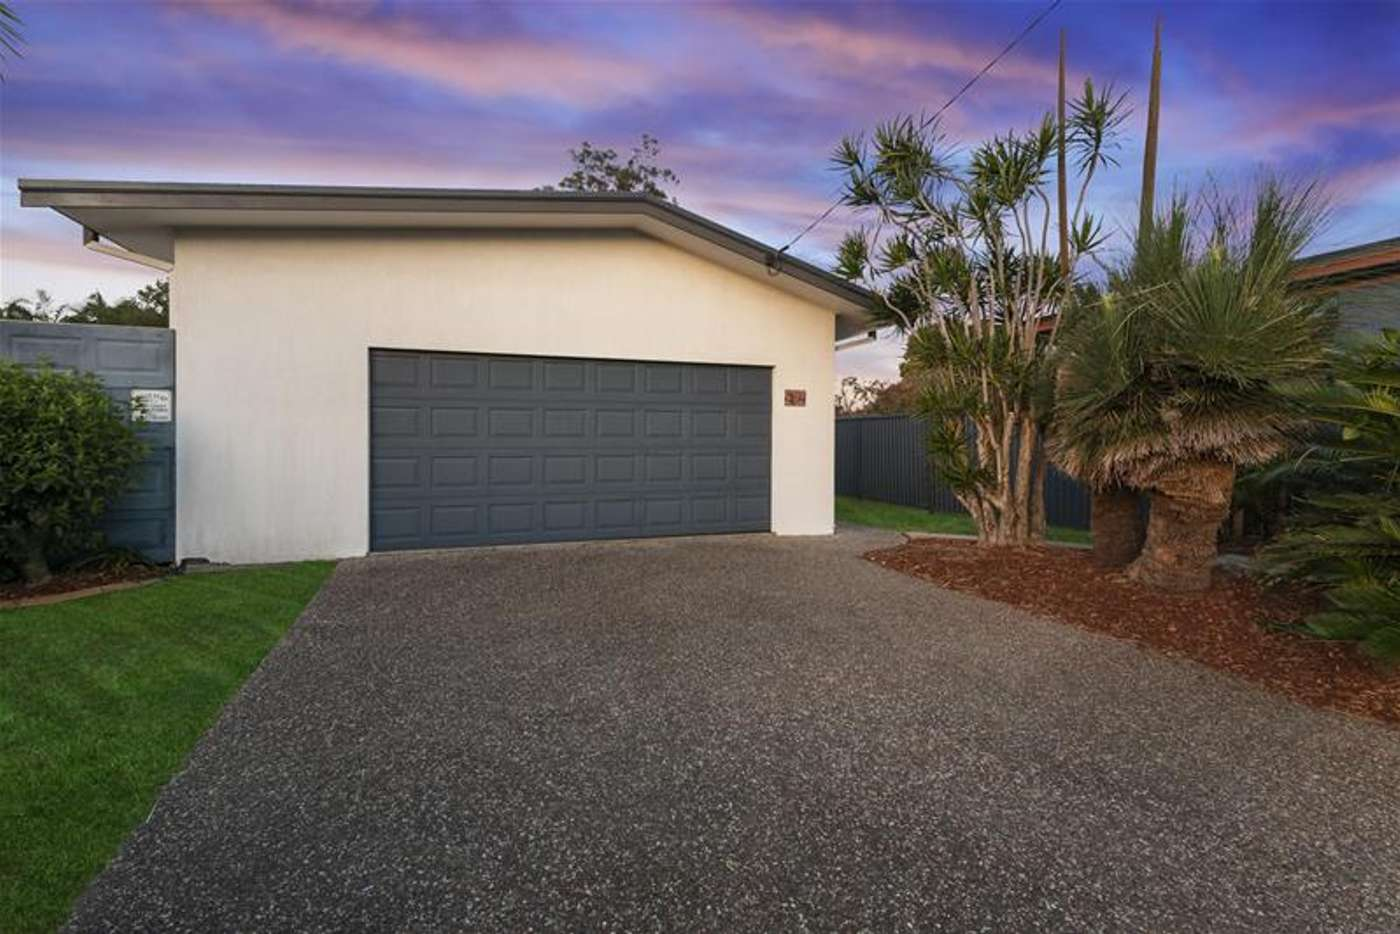 Seventh view of Homely house listing, 37 Tahiti Avenue, Palm Beach QLD 4221